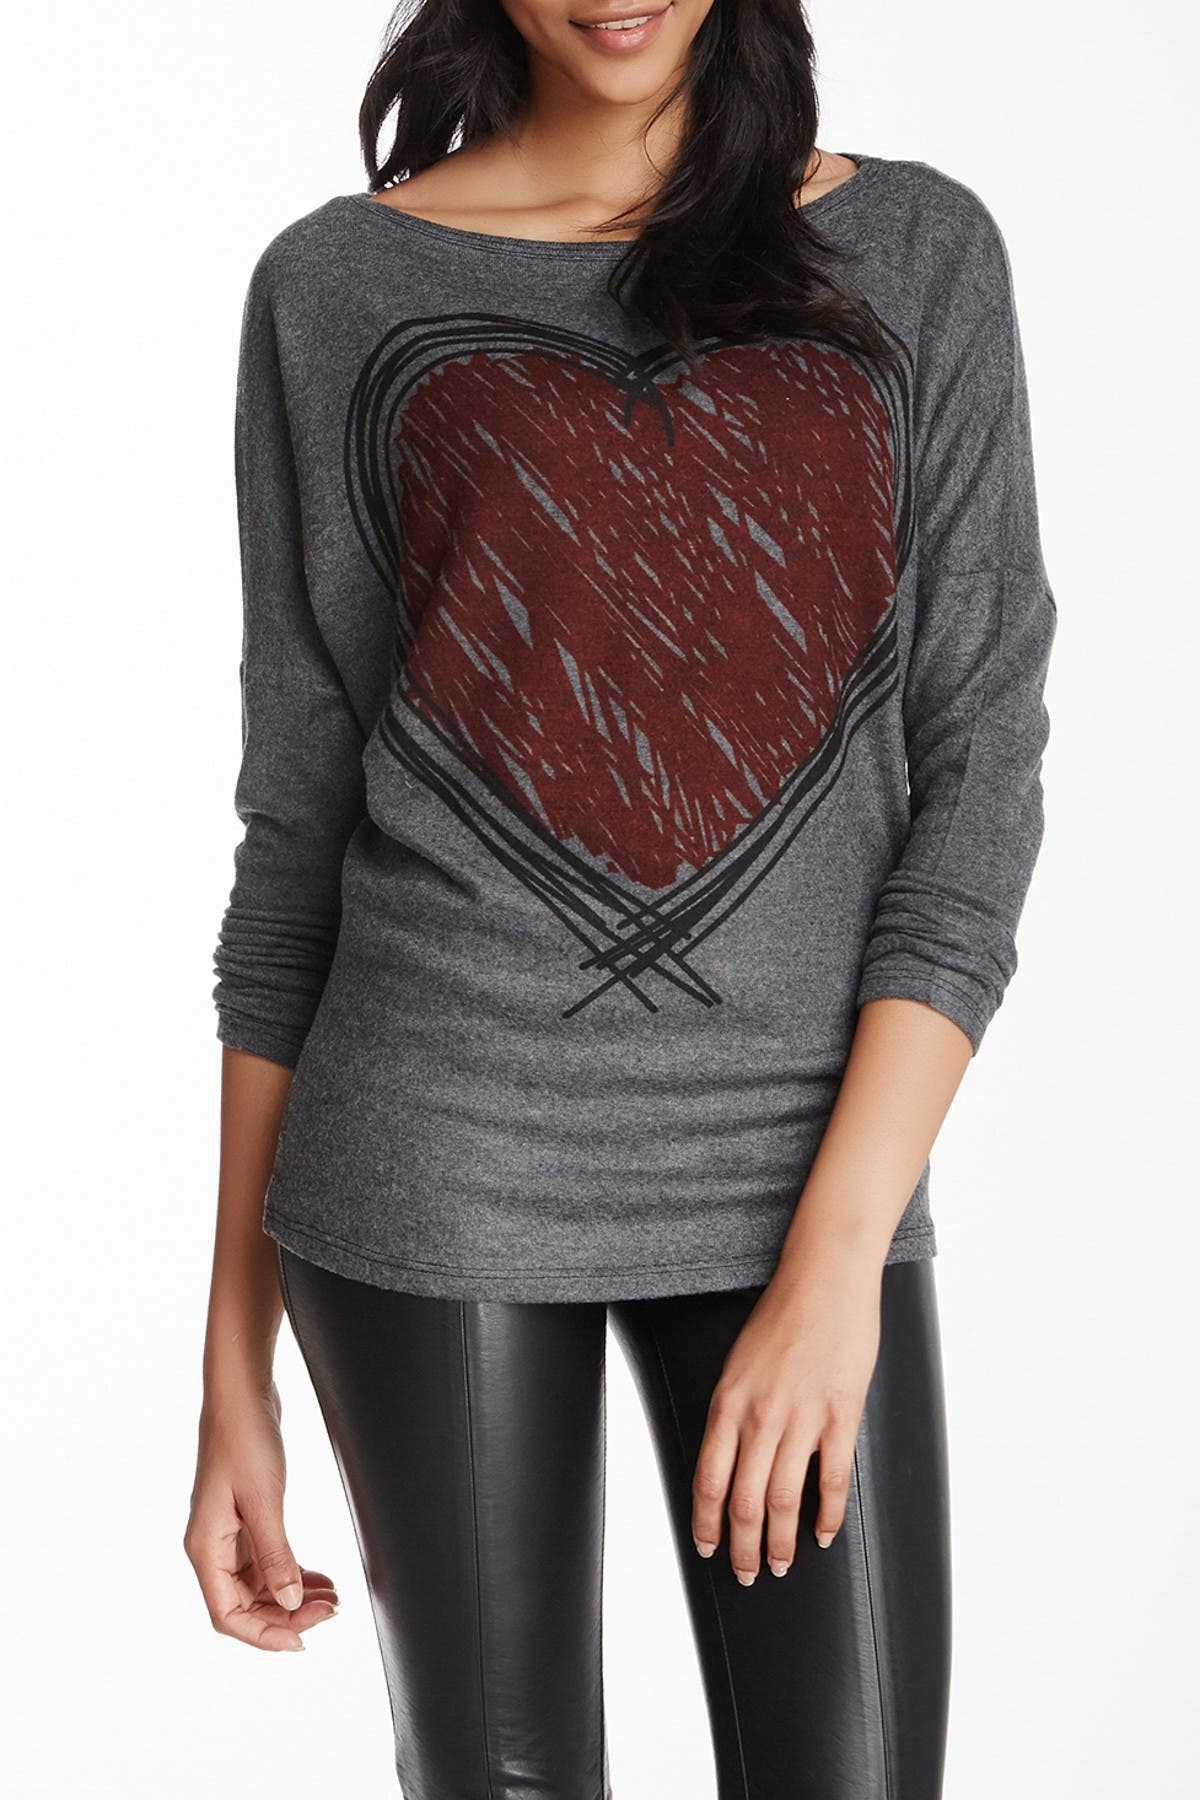 Image of Go Couture Boatneck Dolman Sweater